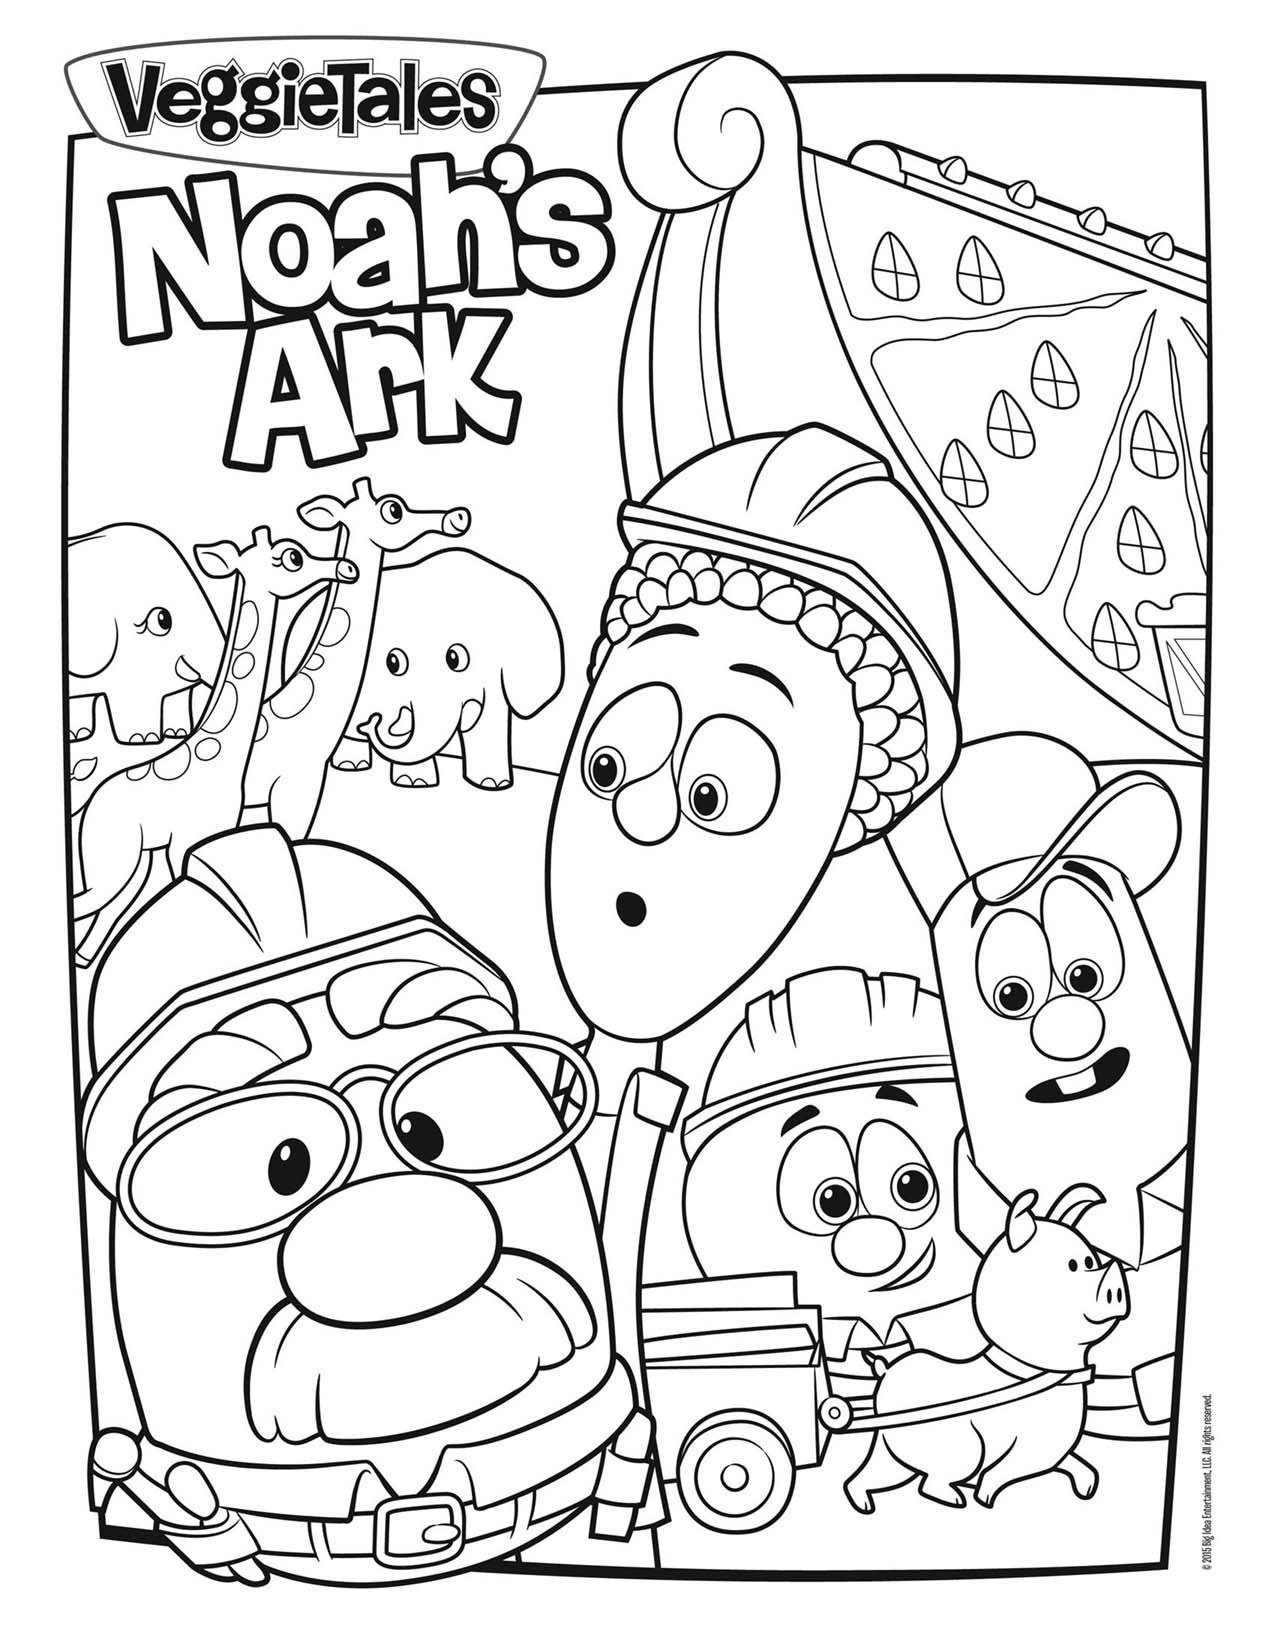 coloring page noahs ark noah39s ark colouring in poster by really giant posters page ark coloring noahs